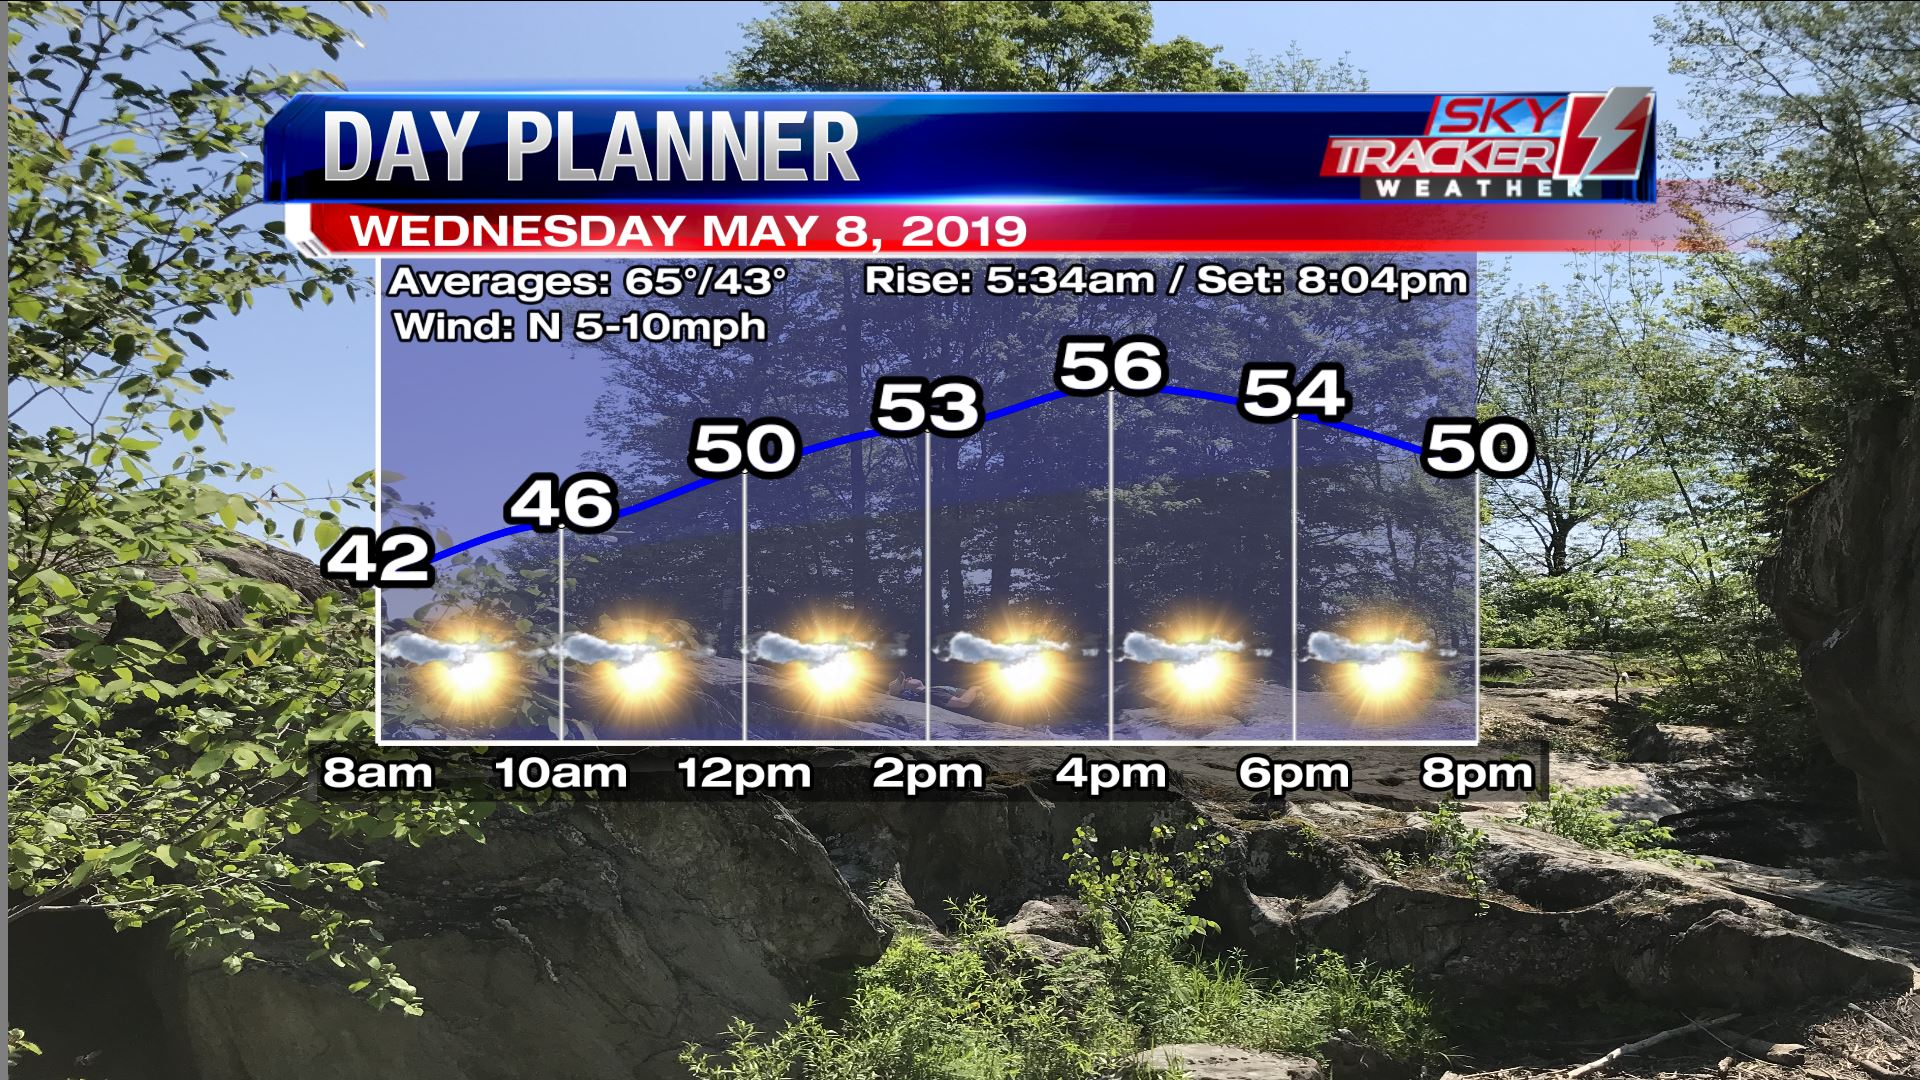 Planner for Wednesday May 8 2019